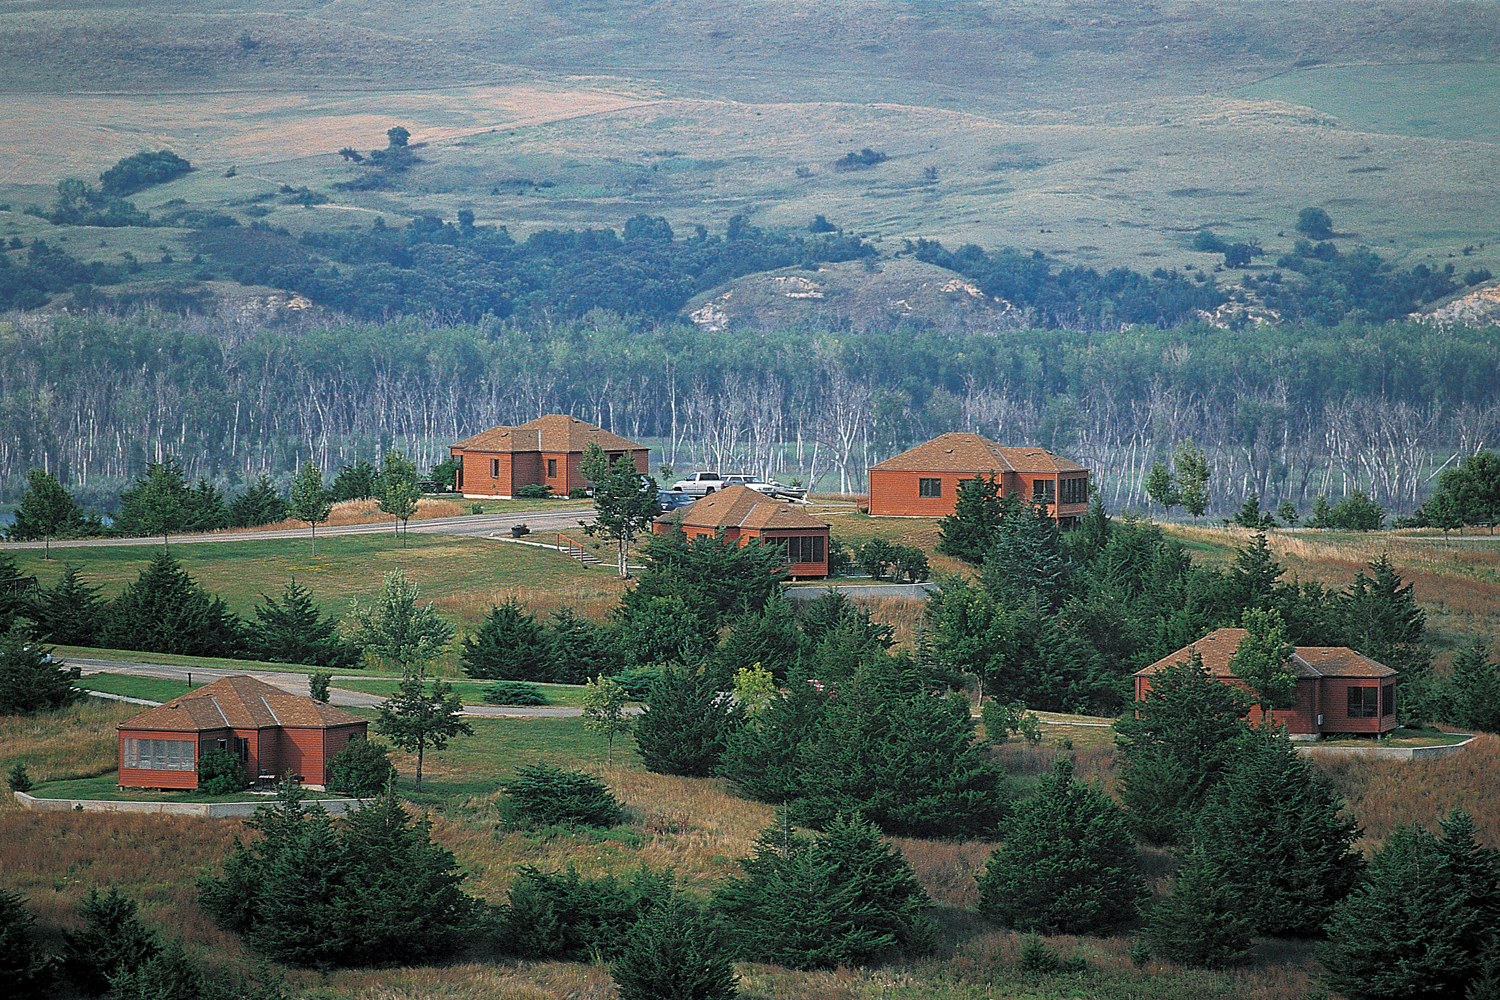 Cabins at Niobrara State Park